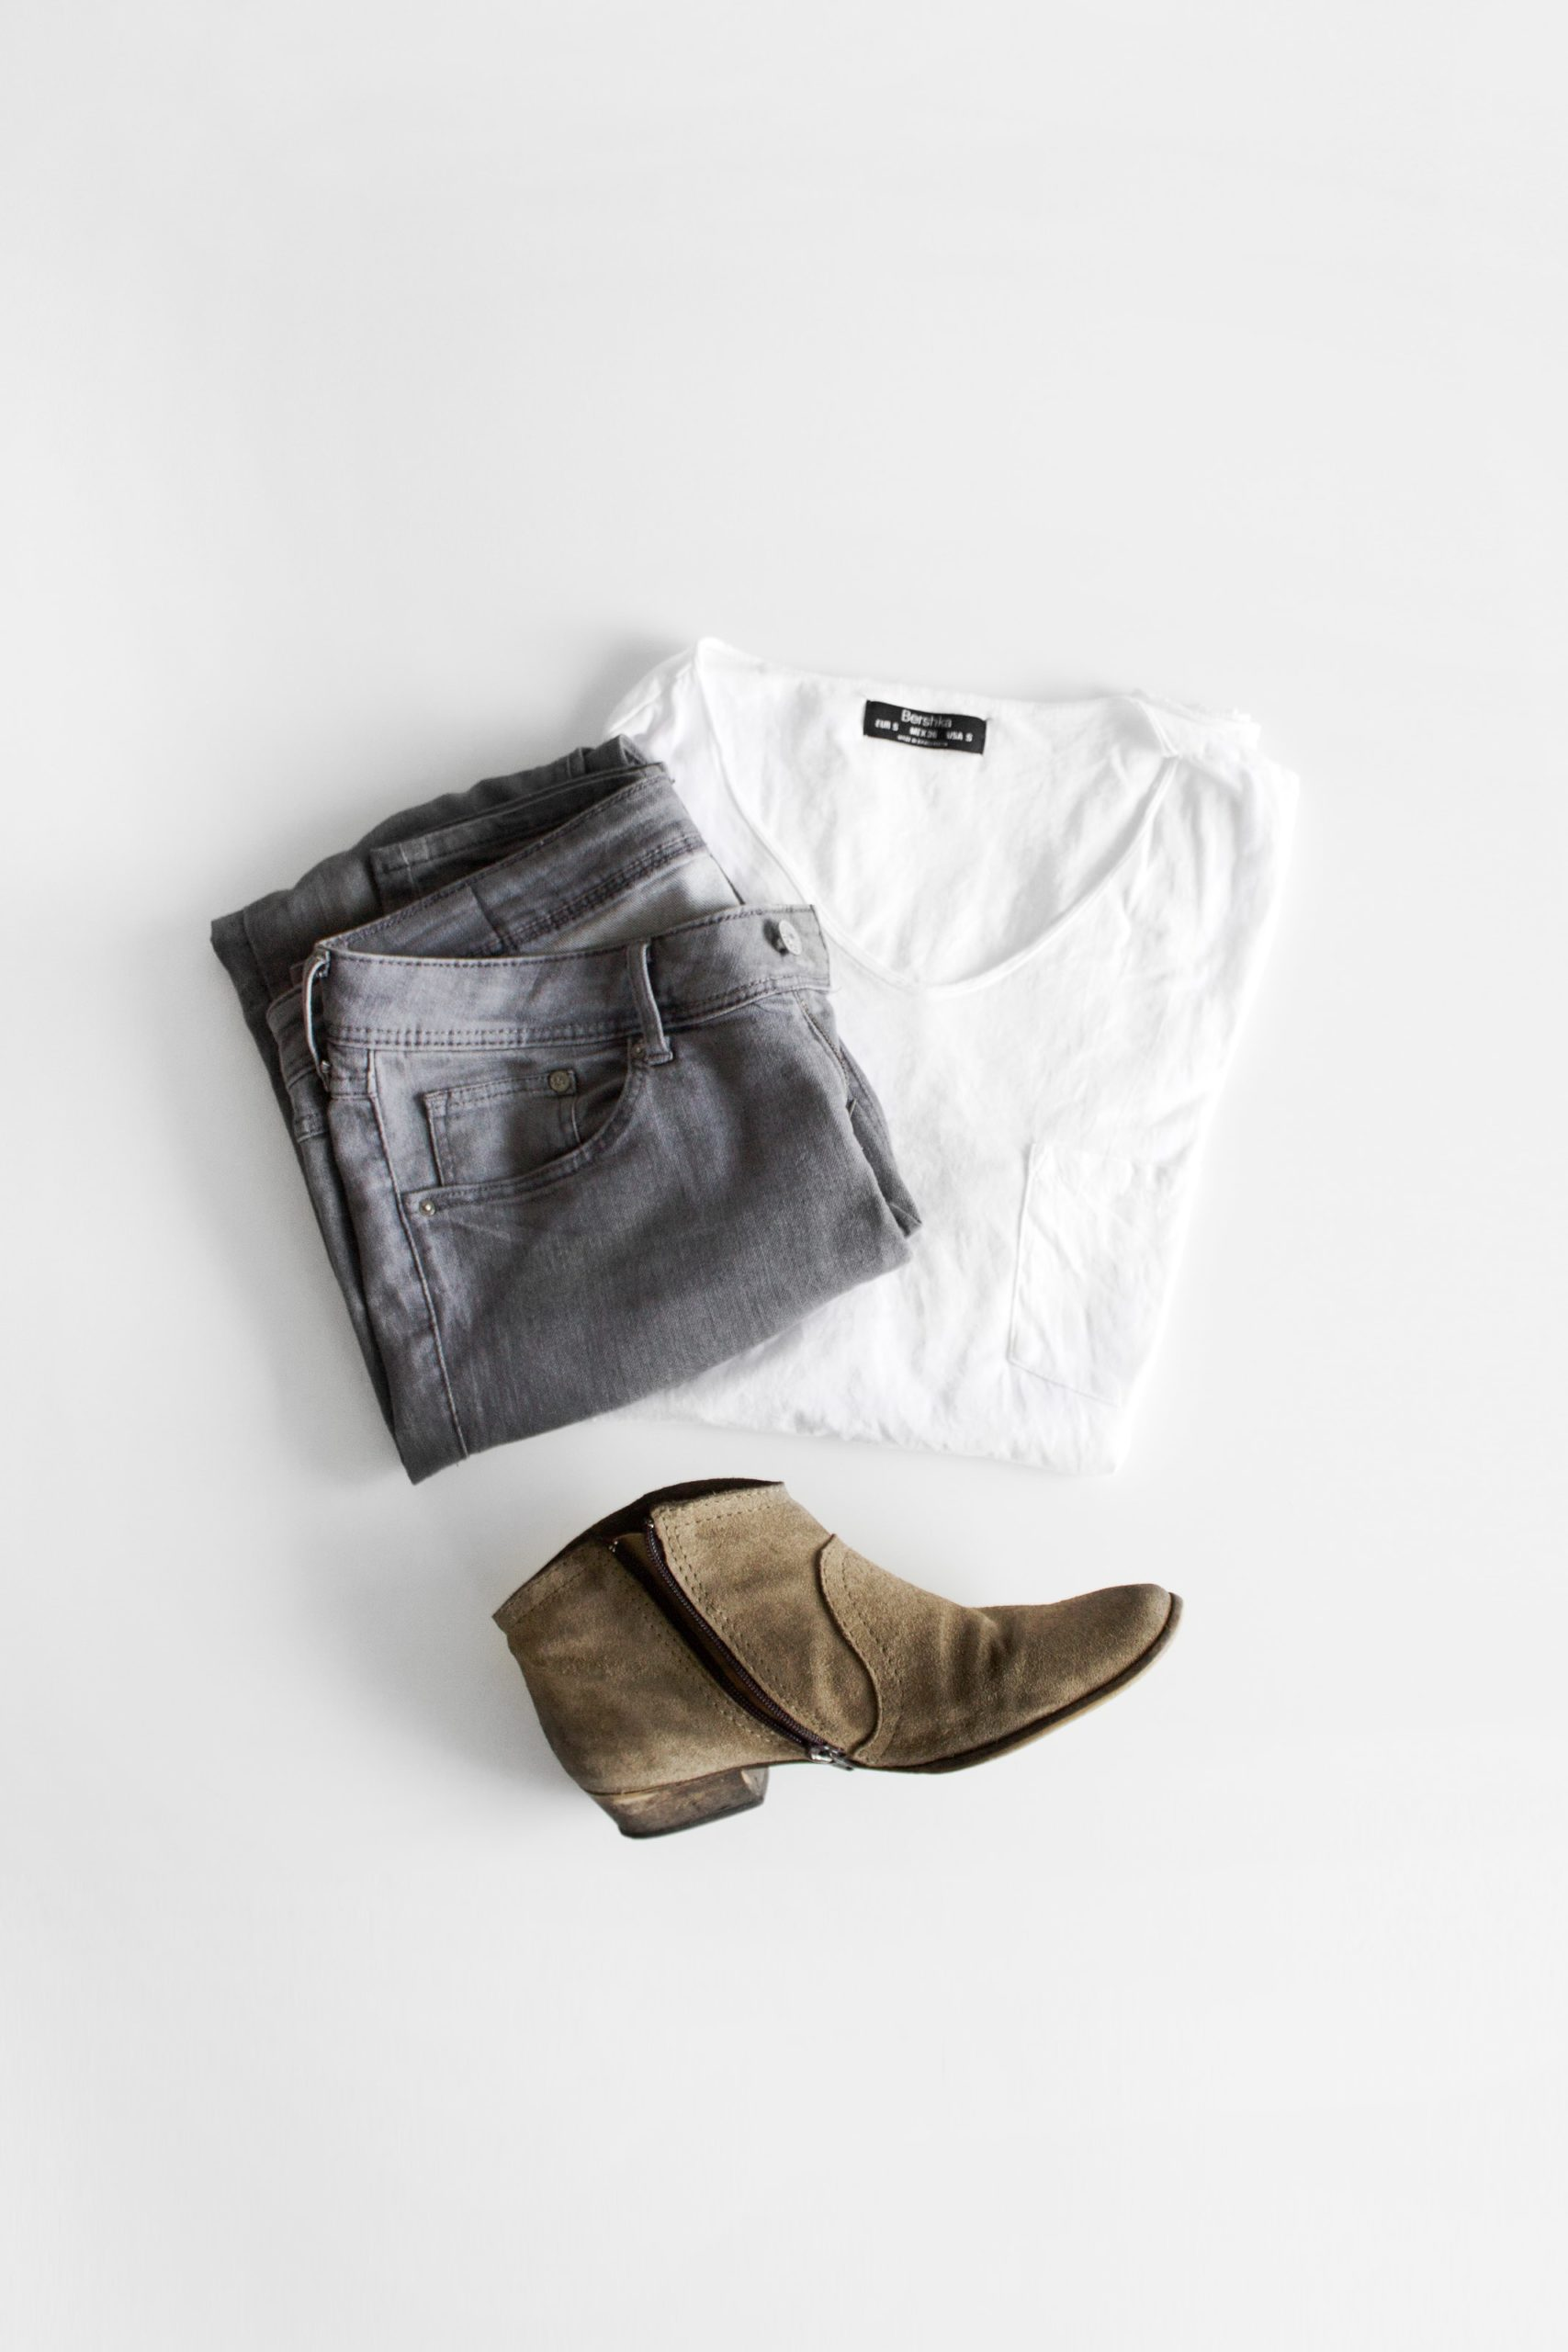 overhead flatlay of womens minimalist clothing on white background